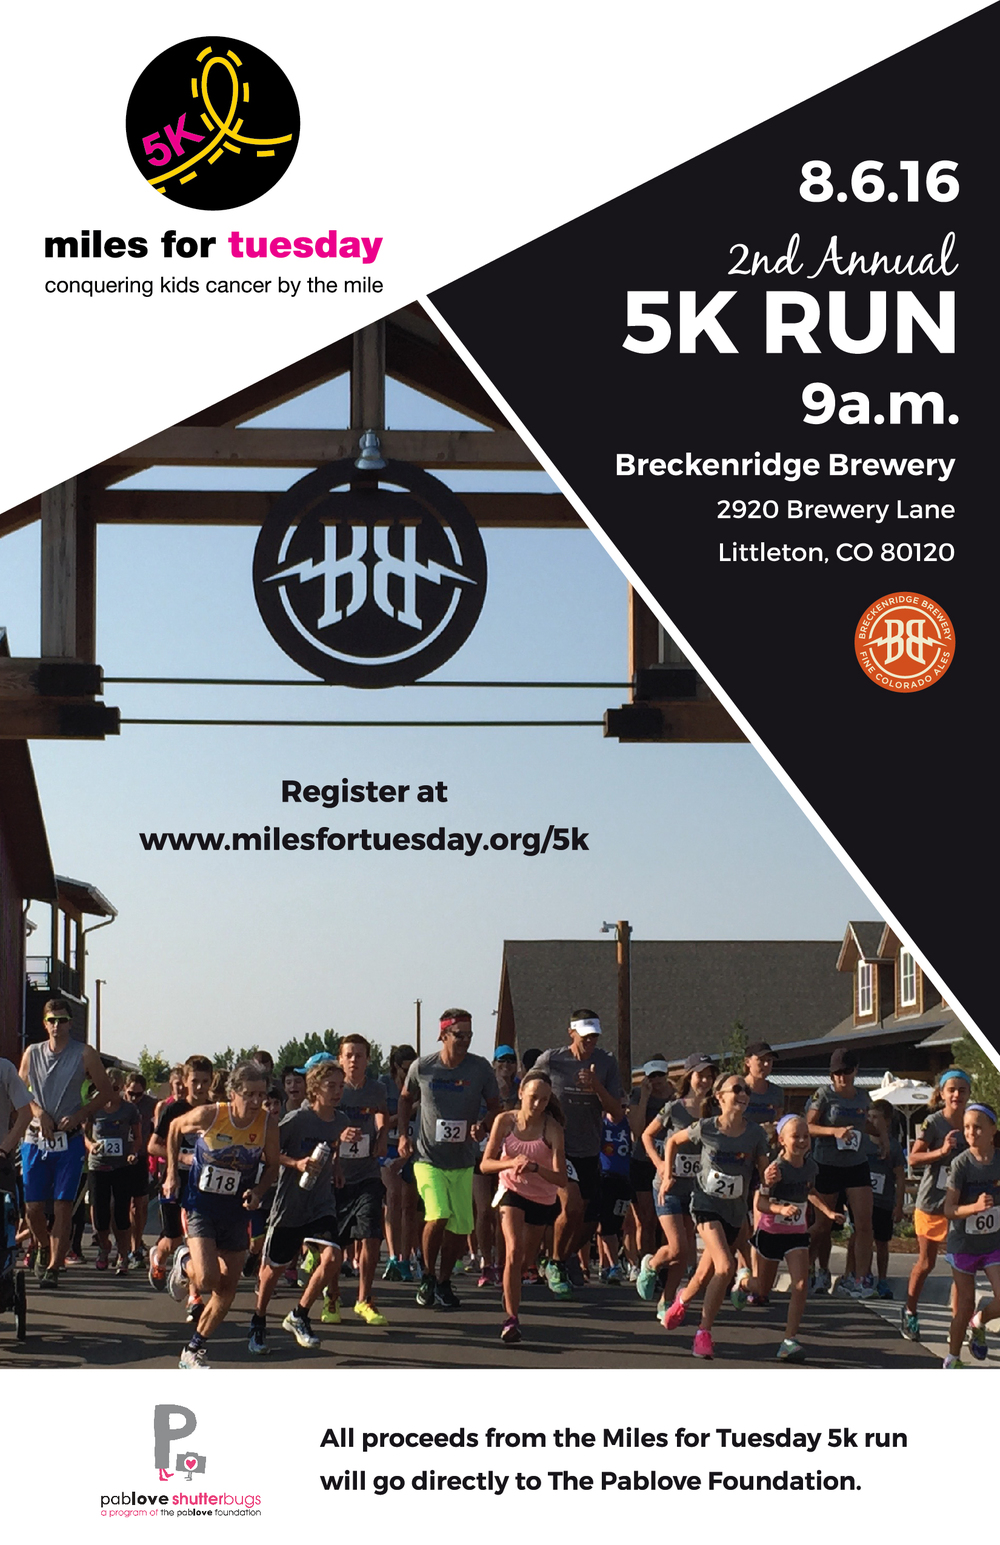 Miles for Tuesday 5k - race flyer.jpg